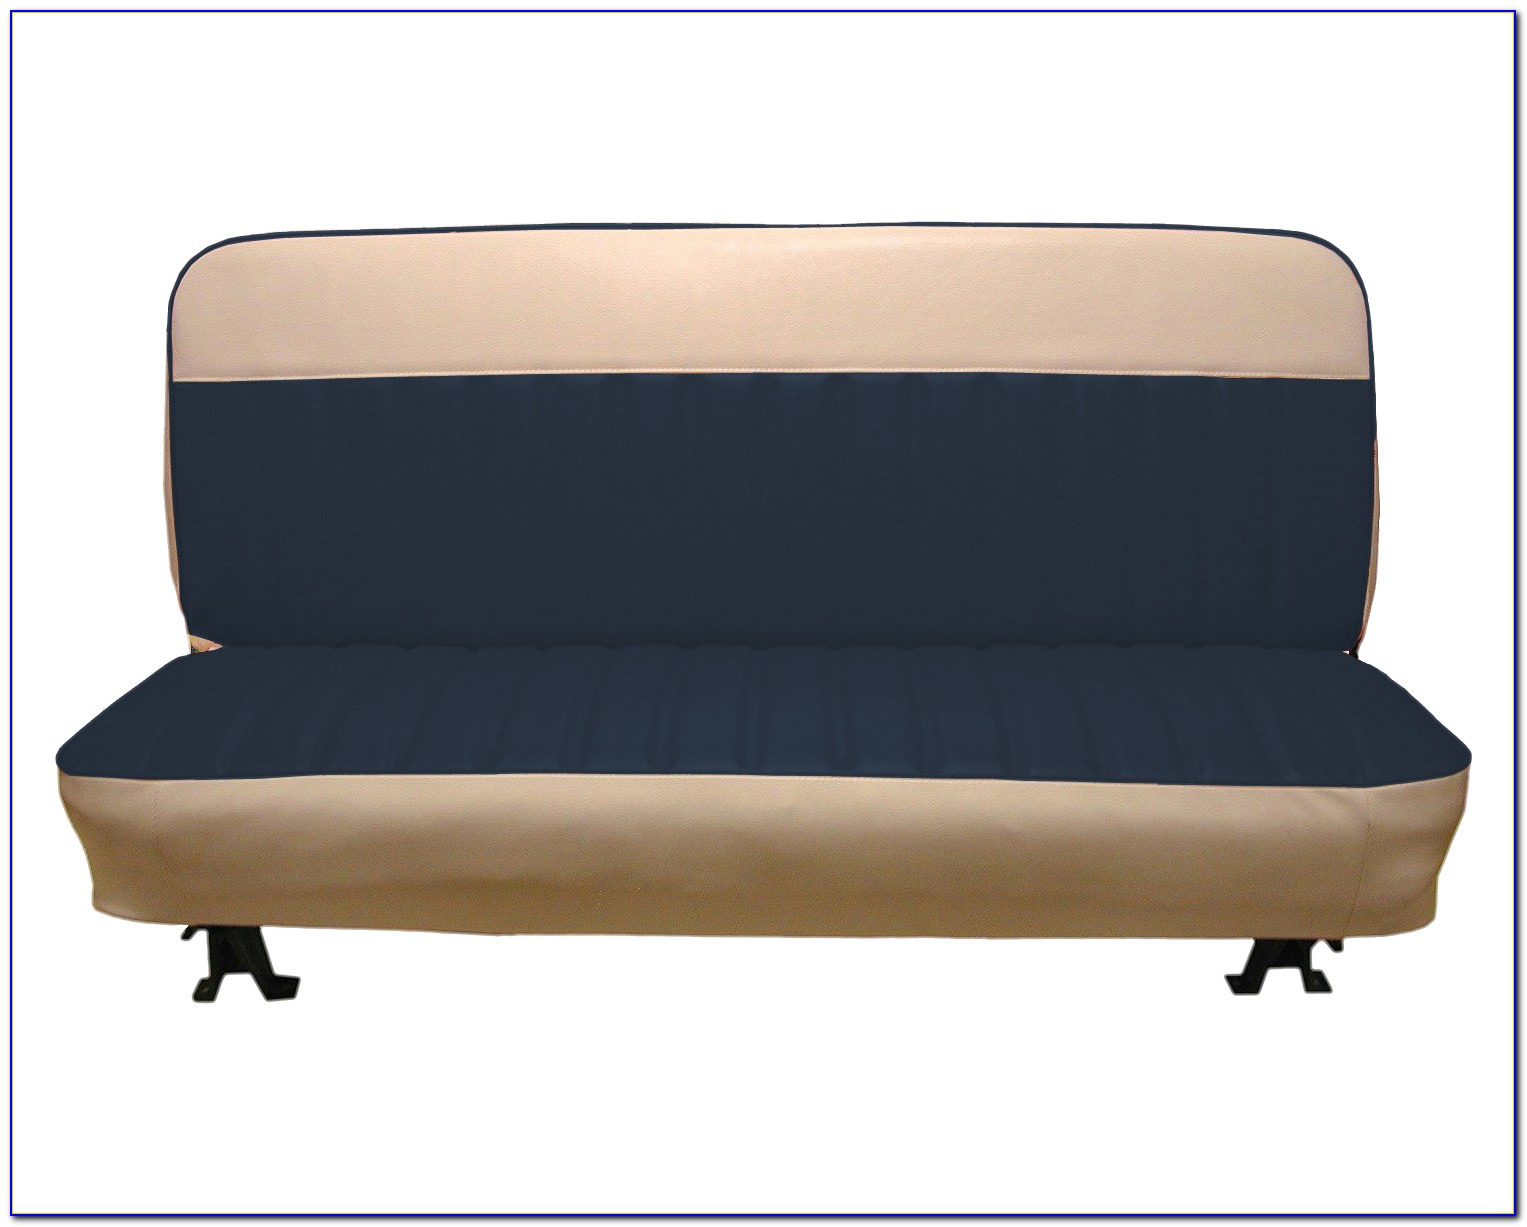 Bench Seat For 1995 Chevy Truck Bench Home Design